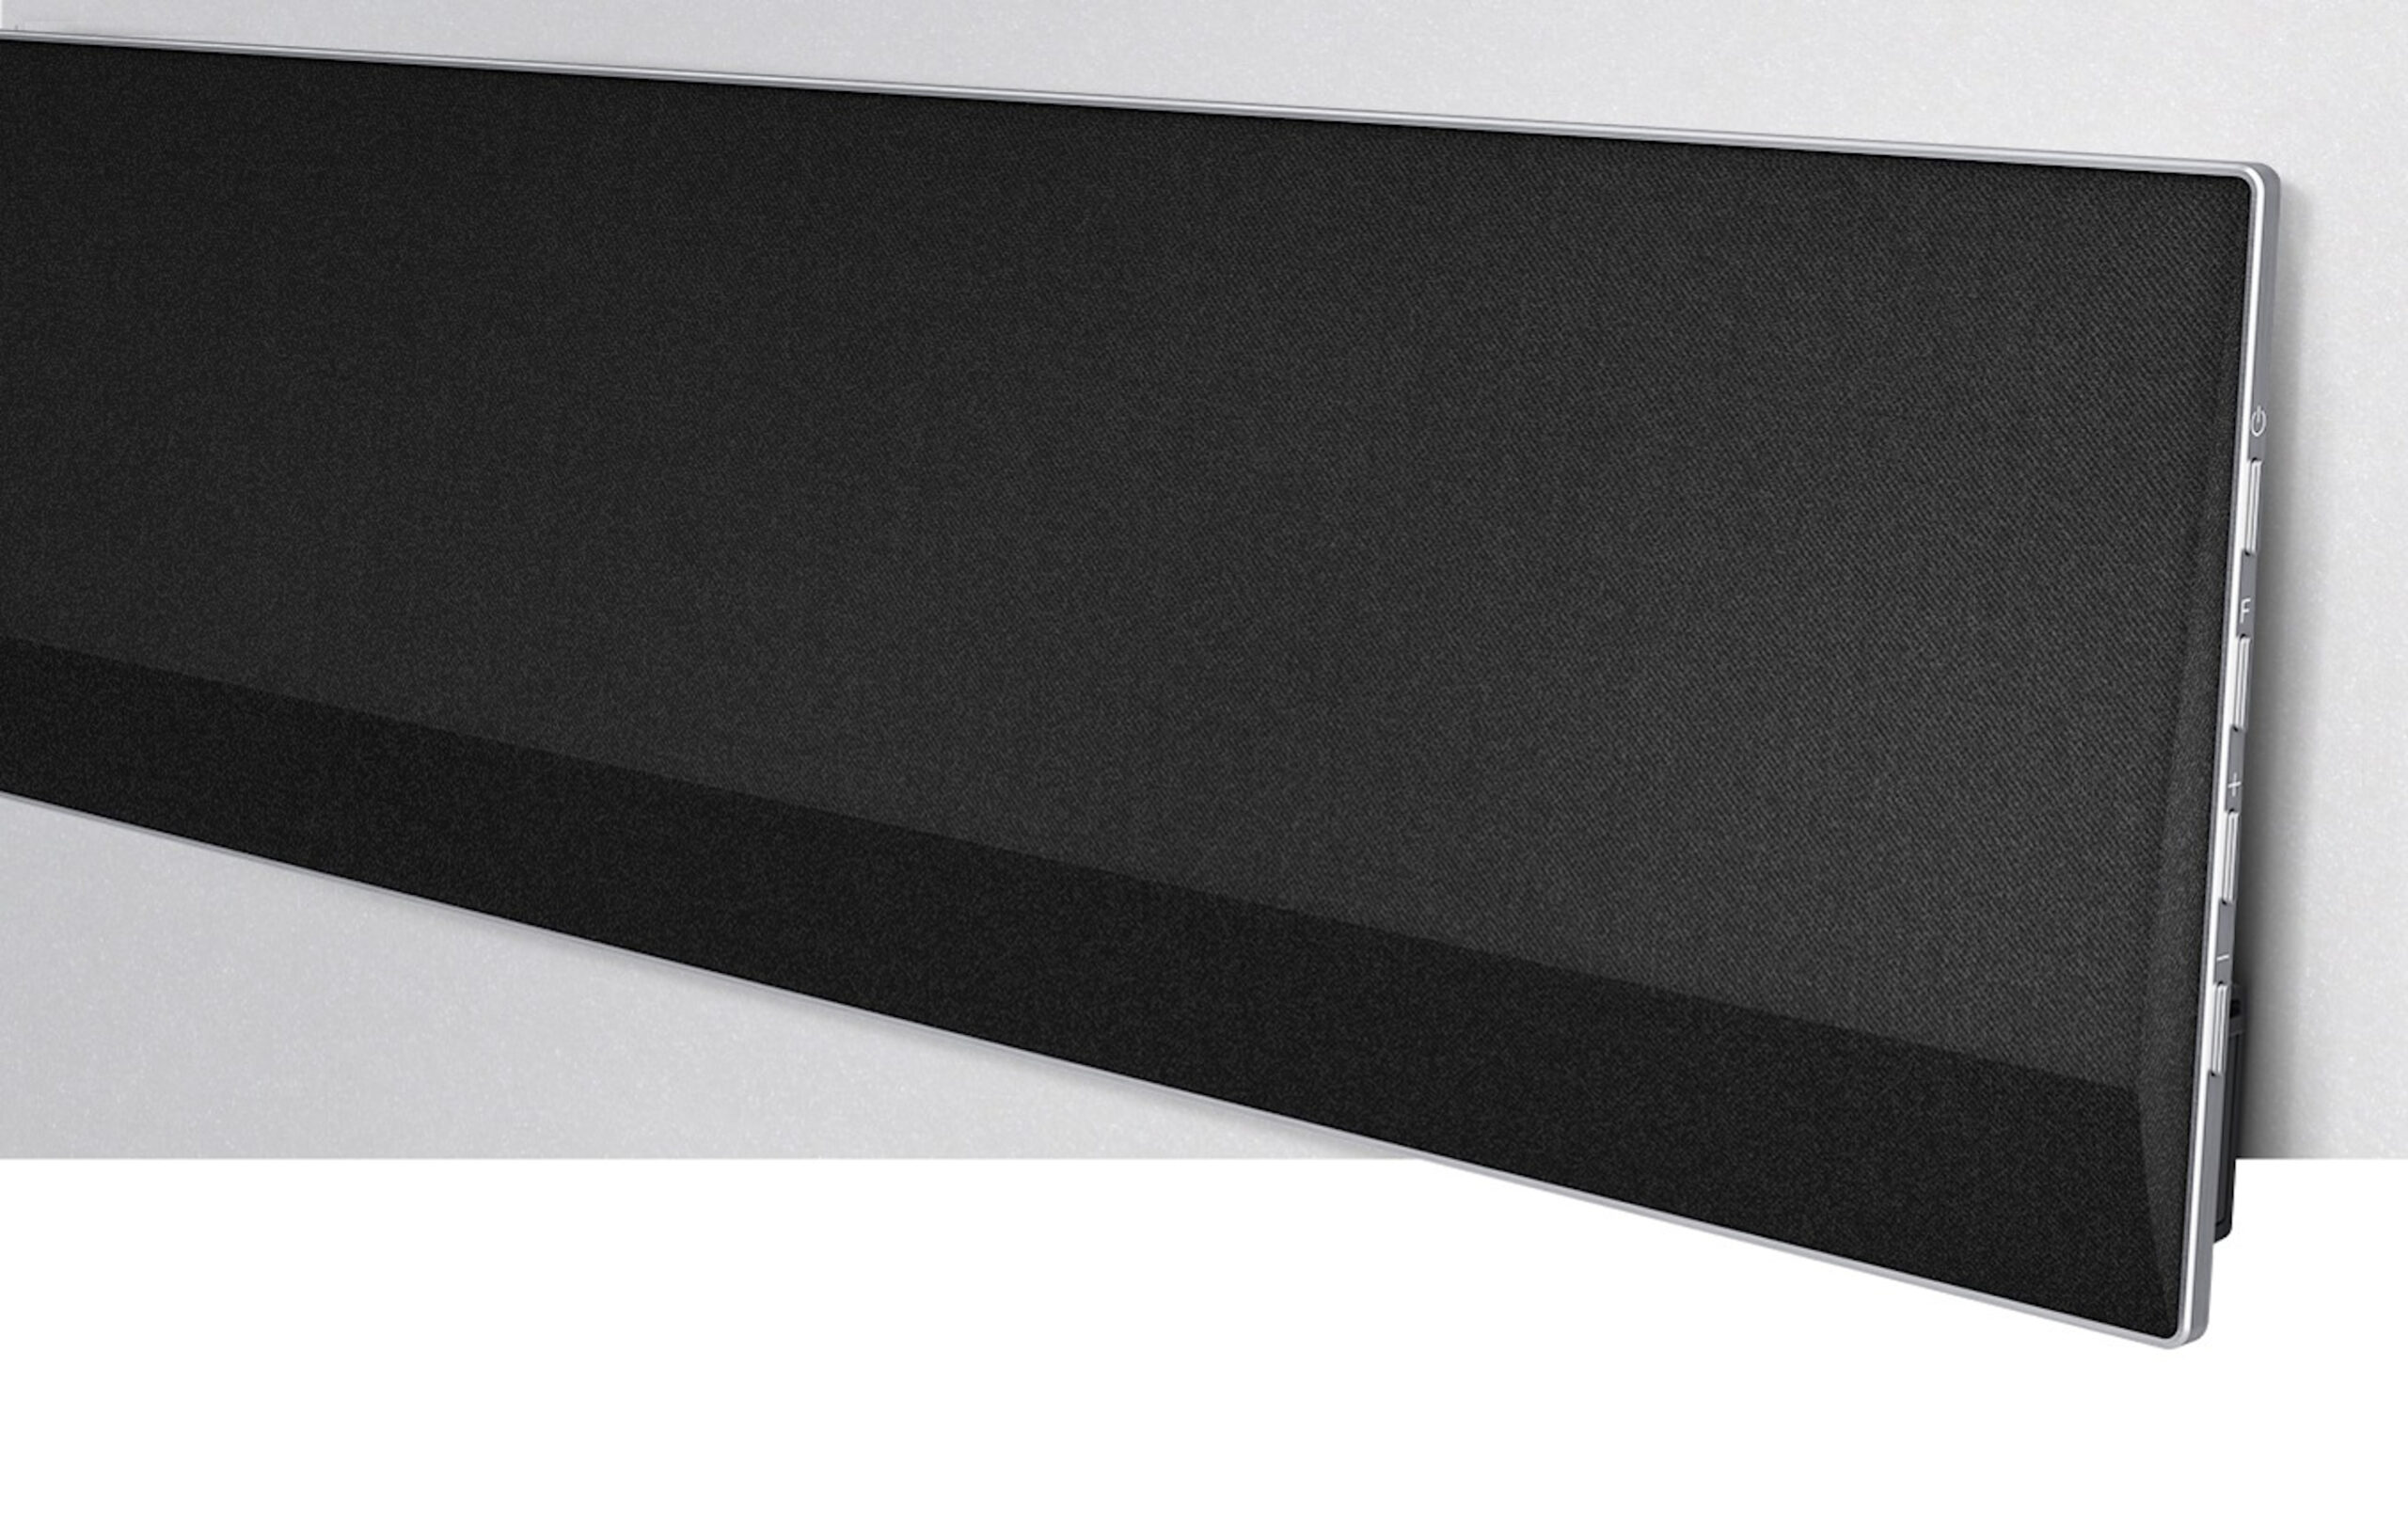 Side view of one end of LG's GX Soundbar against a wall, providing a closer look of its sturdy steel stand